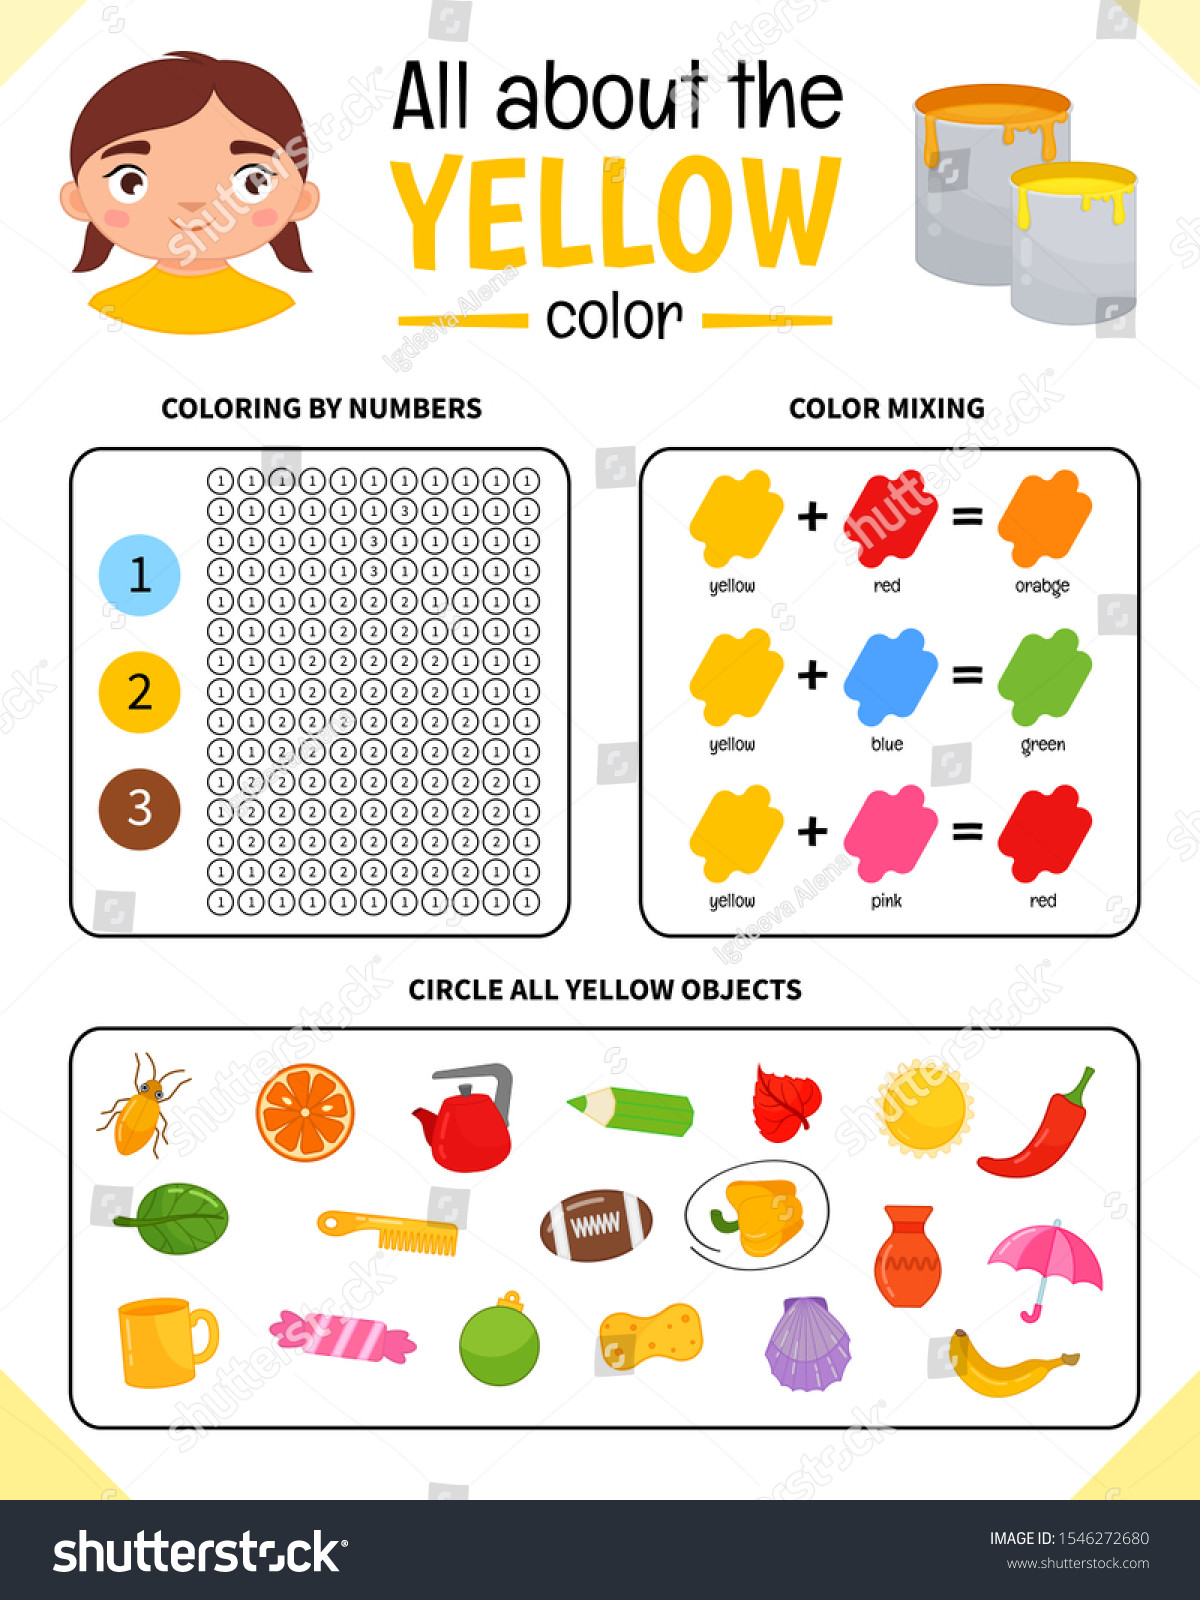 Yellow Worksheets for Preschool Kids Learning Material Worksheet Learning Colors Stock